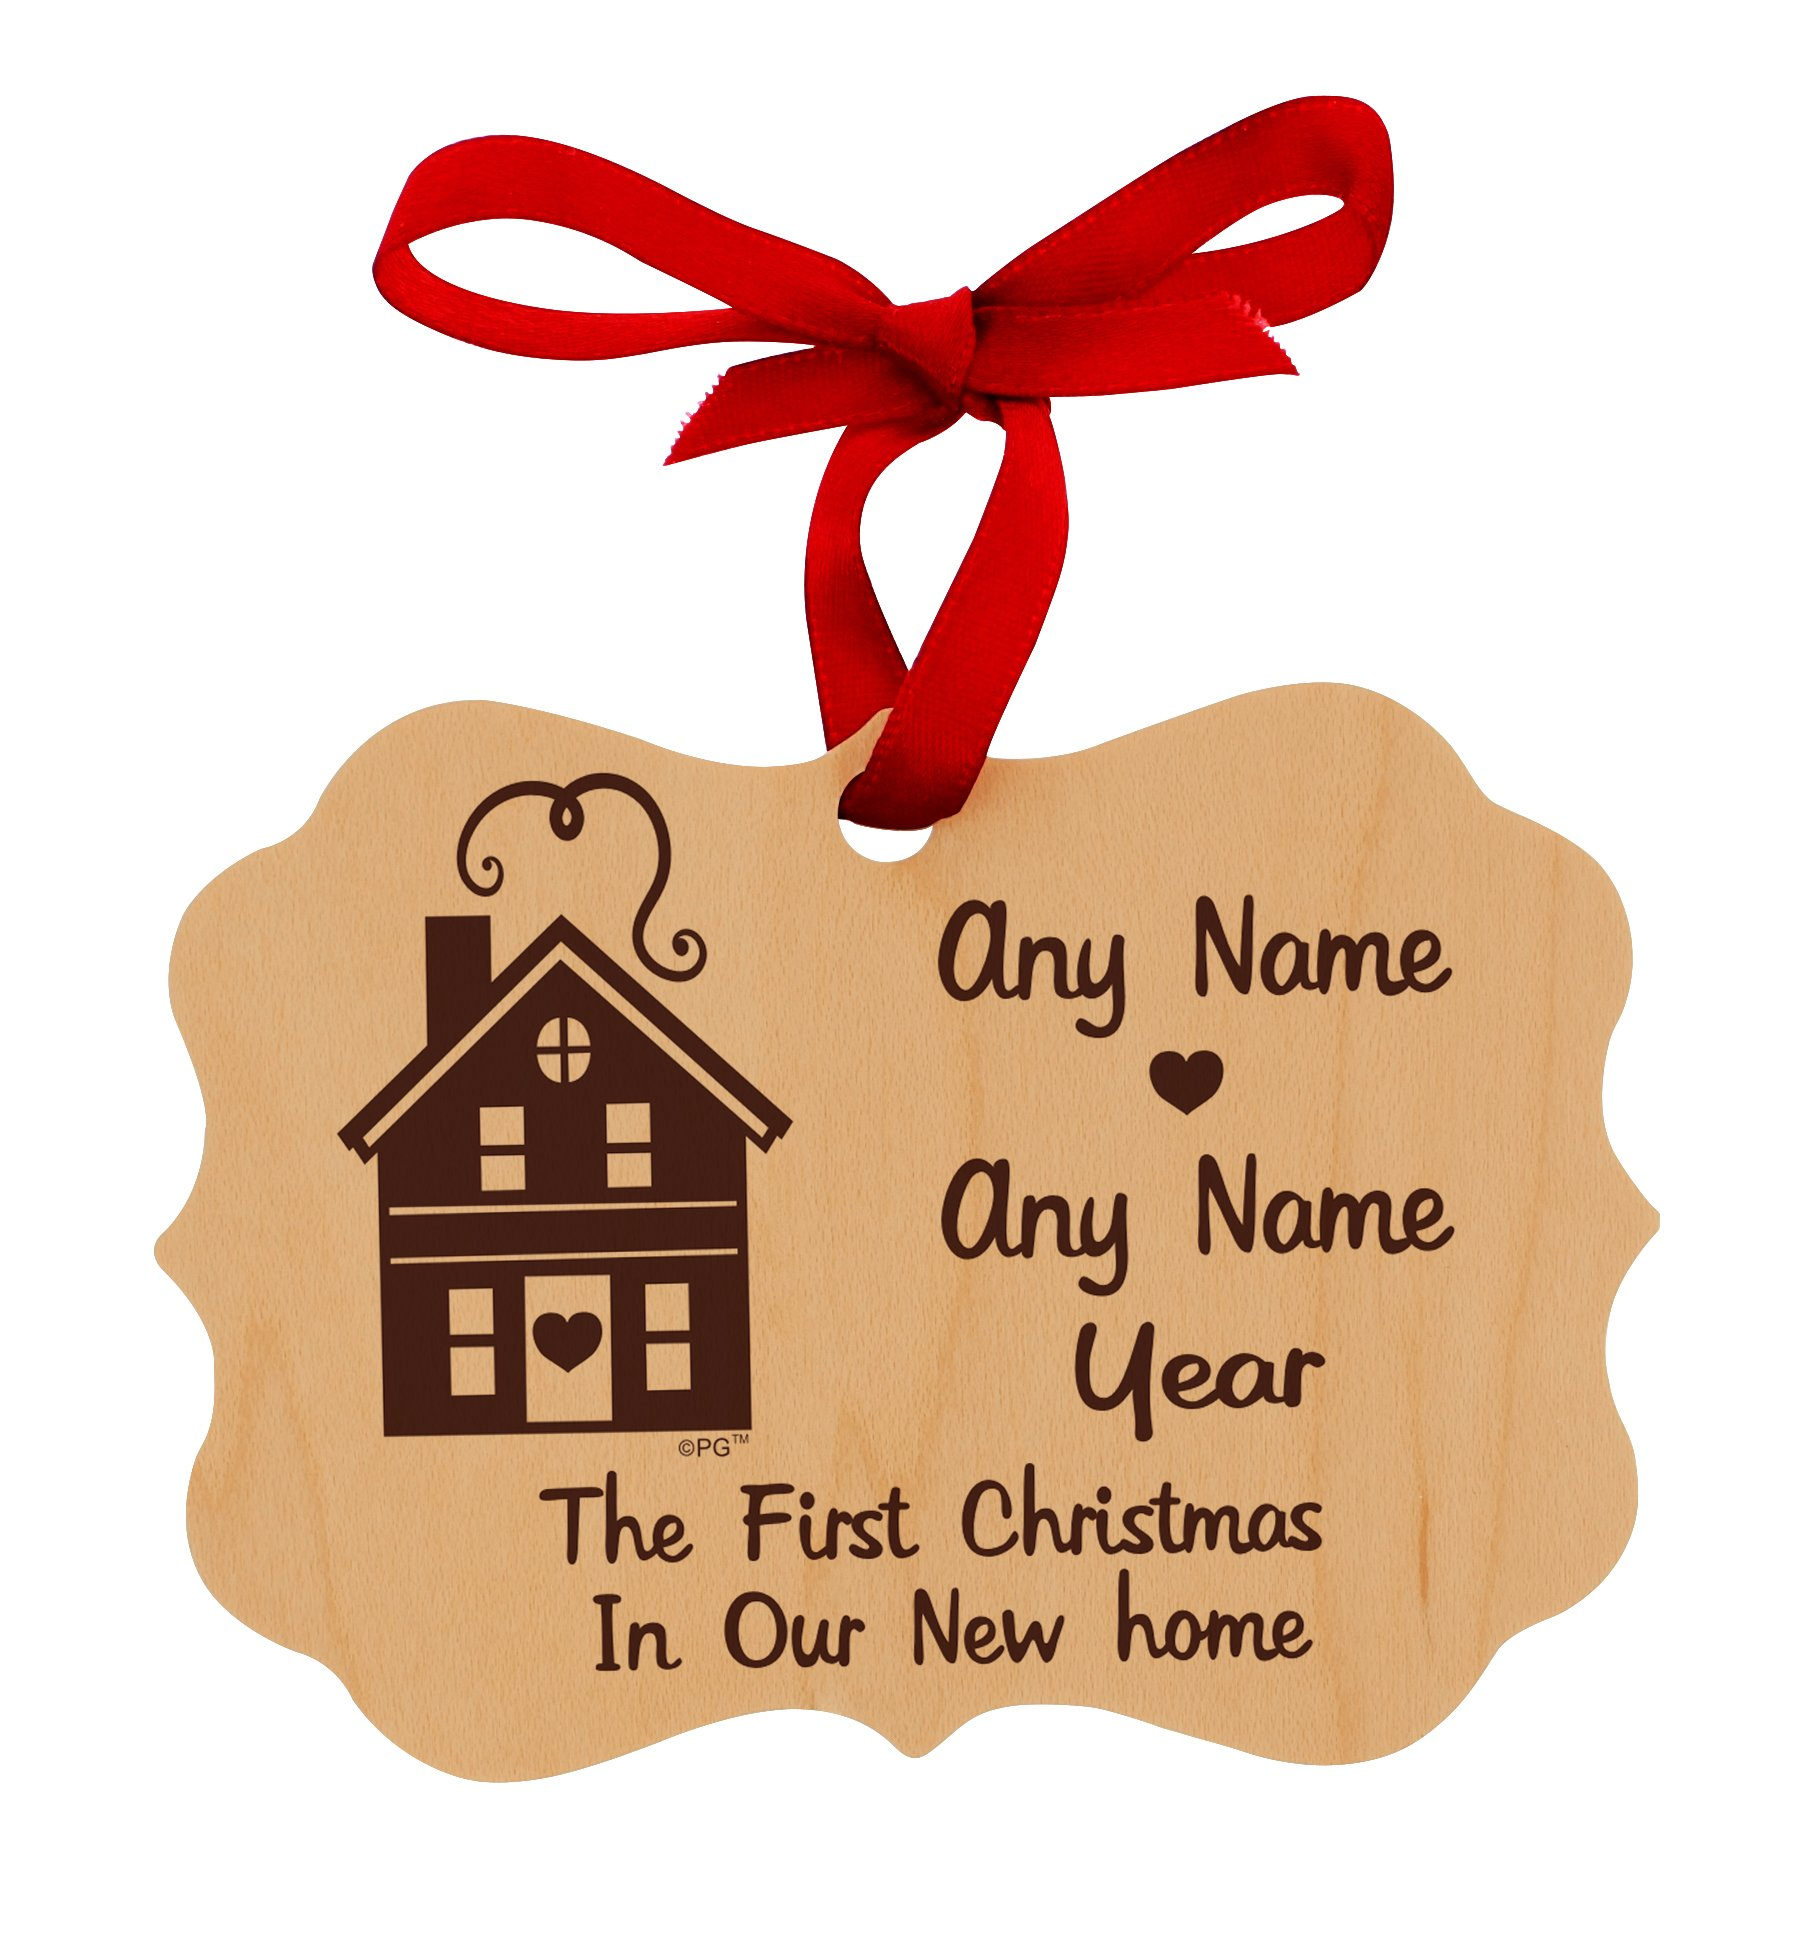 Personalized Wedding Anniversary Christmas Ornaments First Year in Our New Home Customized Names & Anniversary Date Maple Wood Personalized Christmas Ornament New House